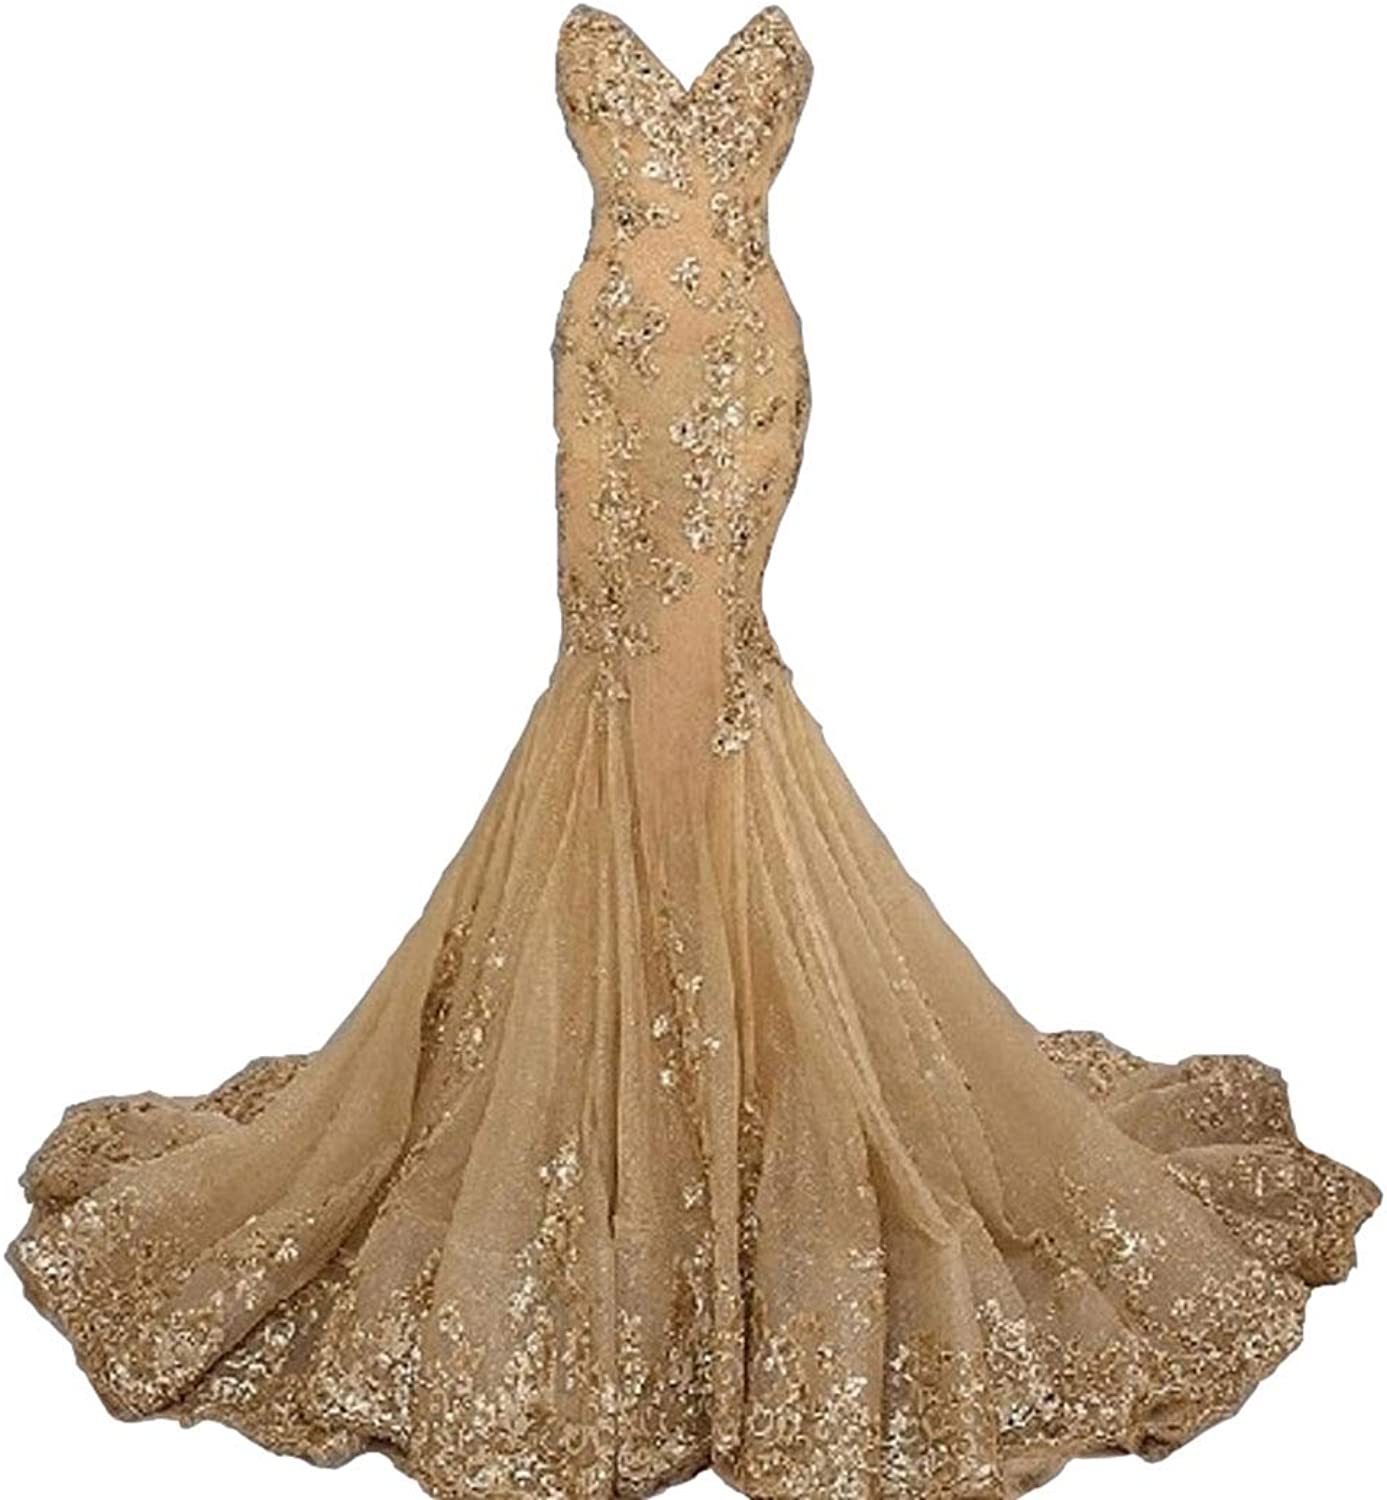 Aries Tuttle Luxury gold Mermaid Wedding Dresses Appliques Beaded Bridal Gown Laceup